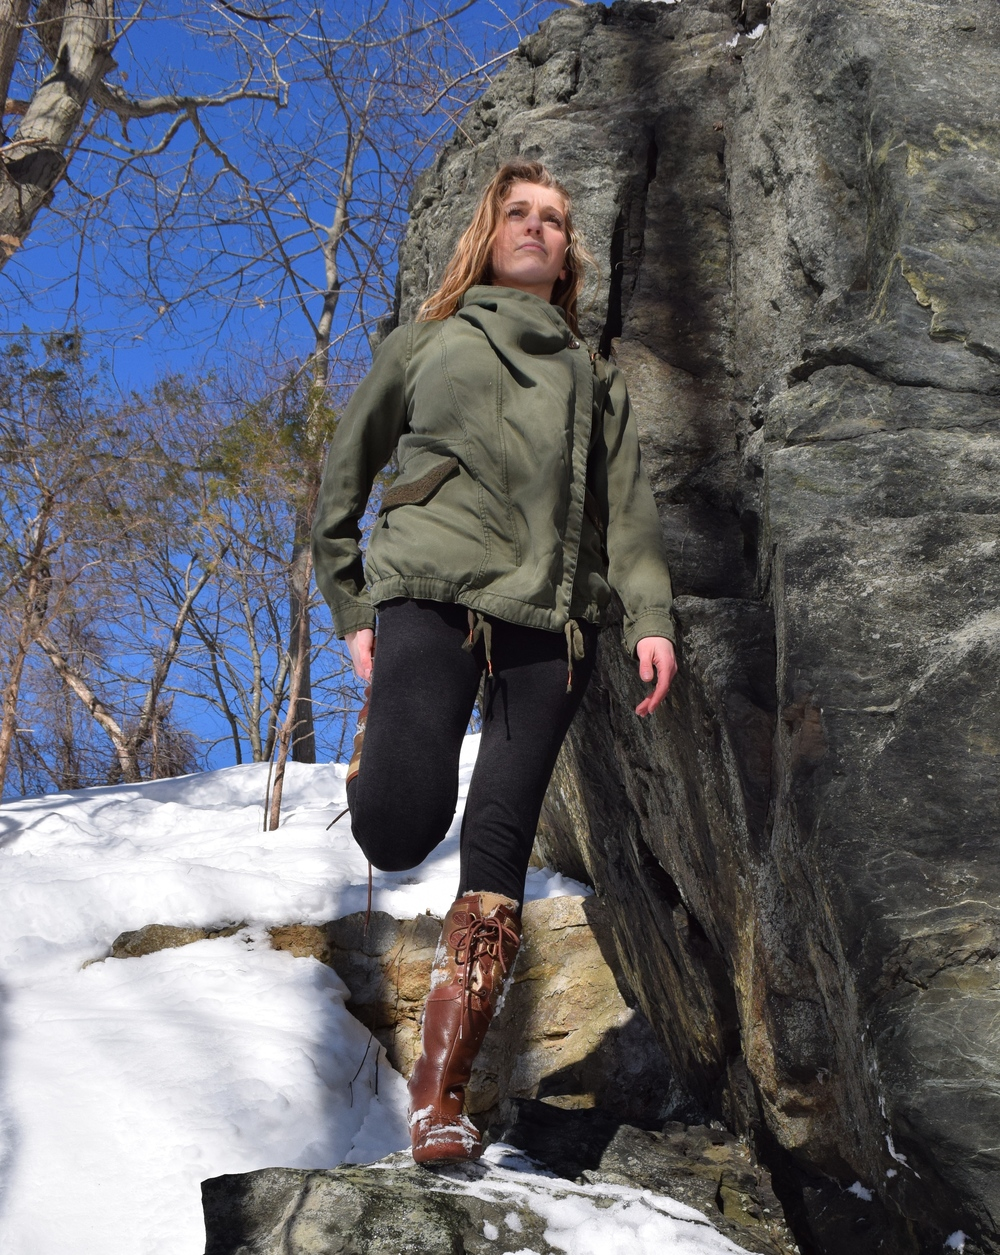 ~Four Seasons Pose~  -Begin in Mountain Pose, focusing on a single eye level point ahead of you.  -Shift weight to left foot as you release the right foot from the floor, bending at the knee to bring the top of the foot into your right hand.  -Knees remain parallel to each other, hip-width apart, as you lift the right heel towards the right glute.  -Release the right quad, keep the hips neutral, and engage the glutes to intensify the stretch.  -Continue pulling up through the crown of the head as you take 3 deep inhales and exhales.  -Gently release the foot back into Mountain Pose.  -Repeat on other side.